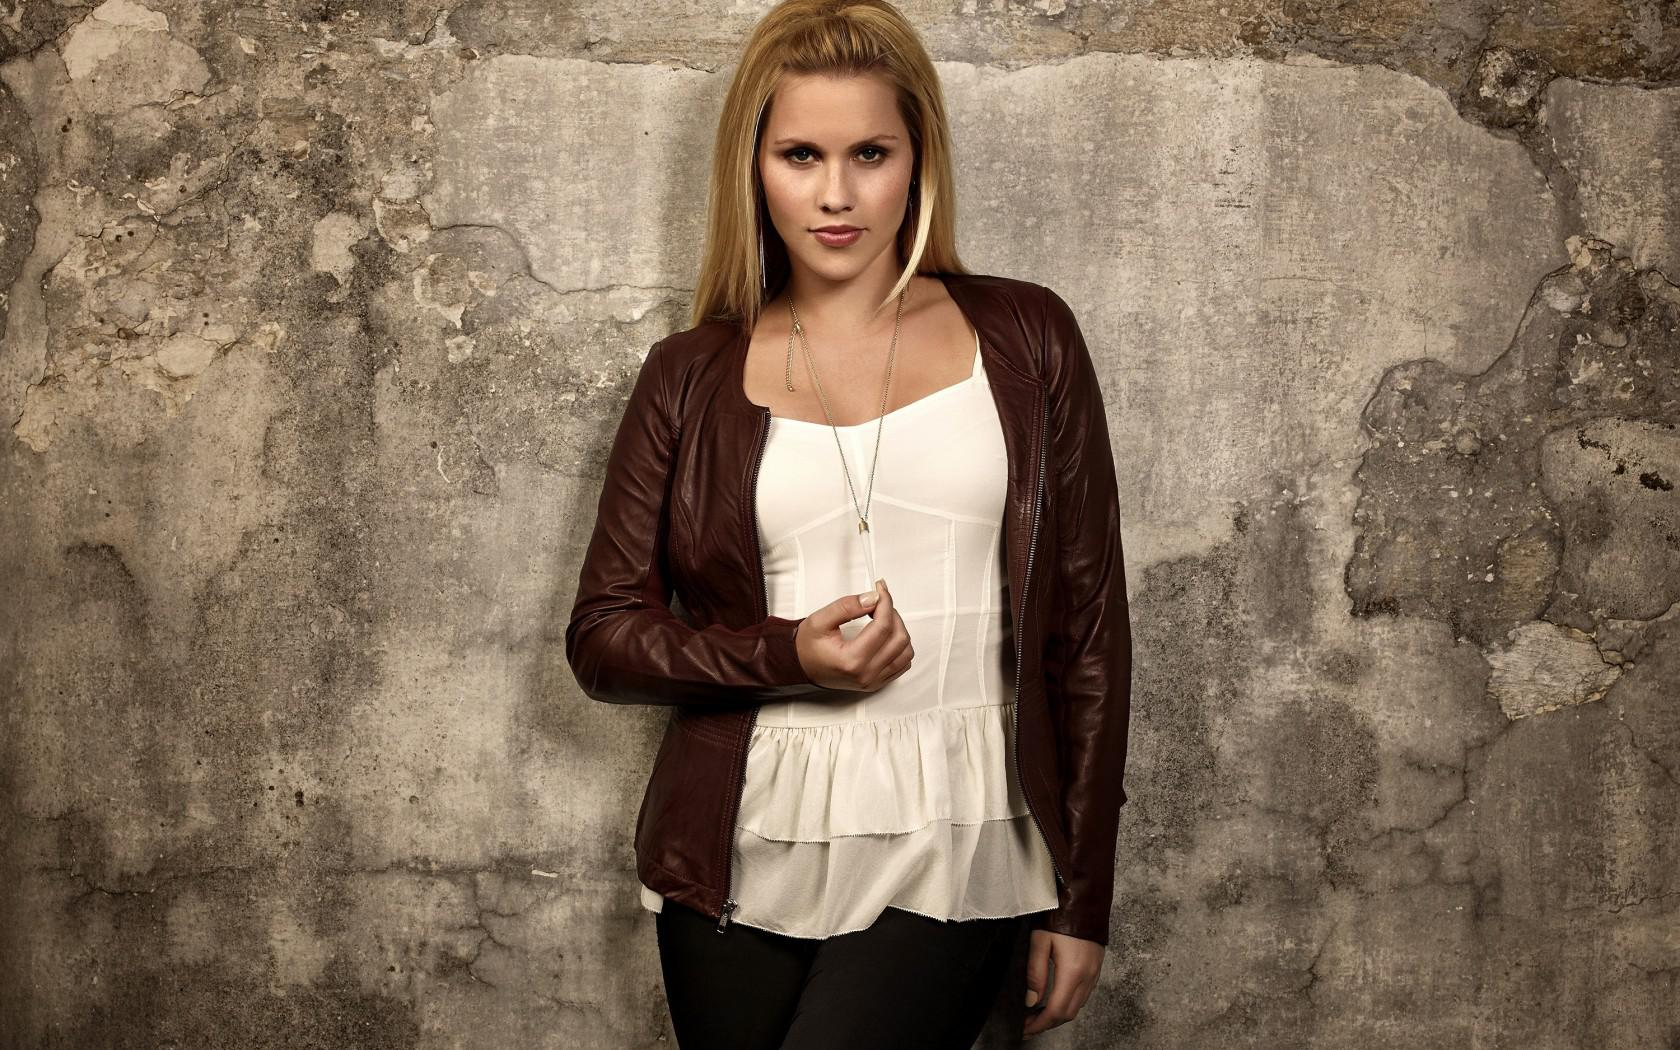 1680x1050 - Claire Holt Wallpapers 1